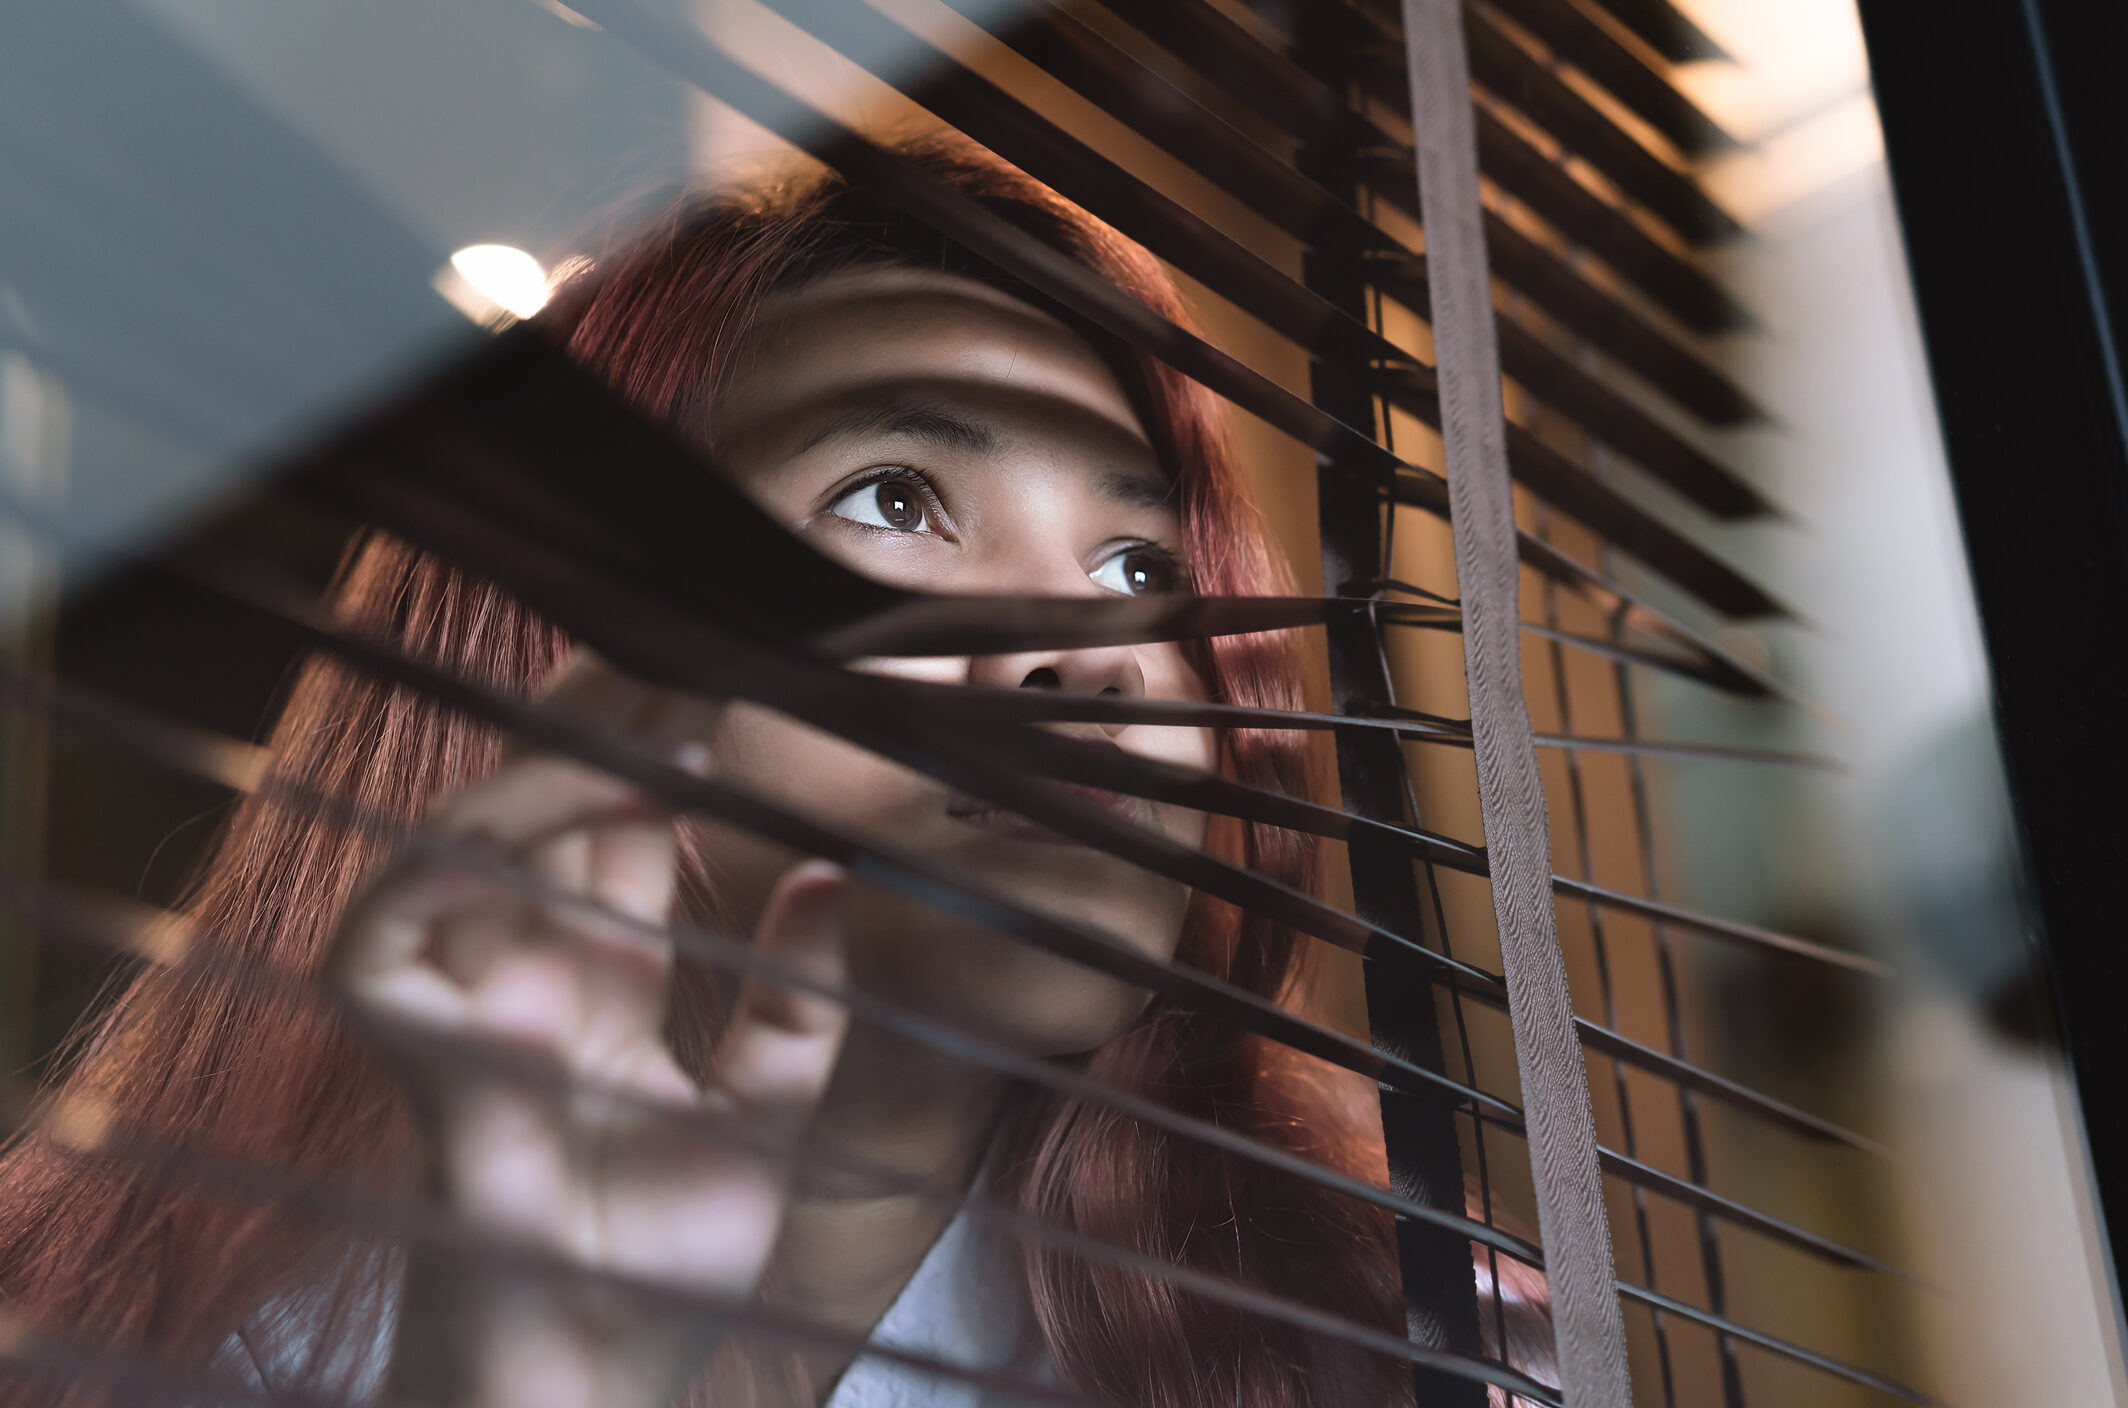 news.umich.edu: Violence against Asian Americans on the rise, but racism isn't new